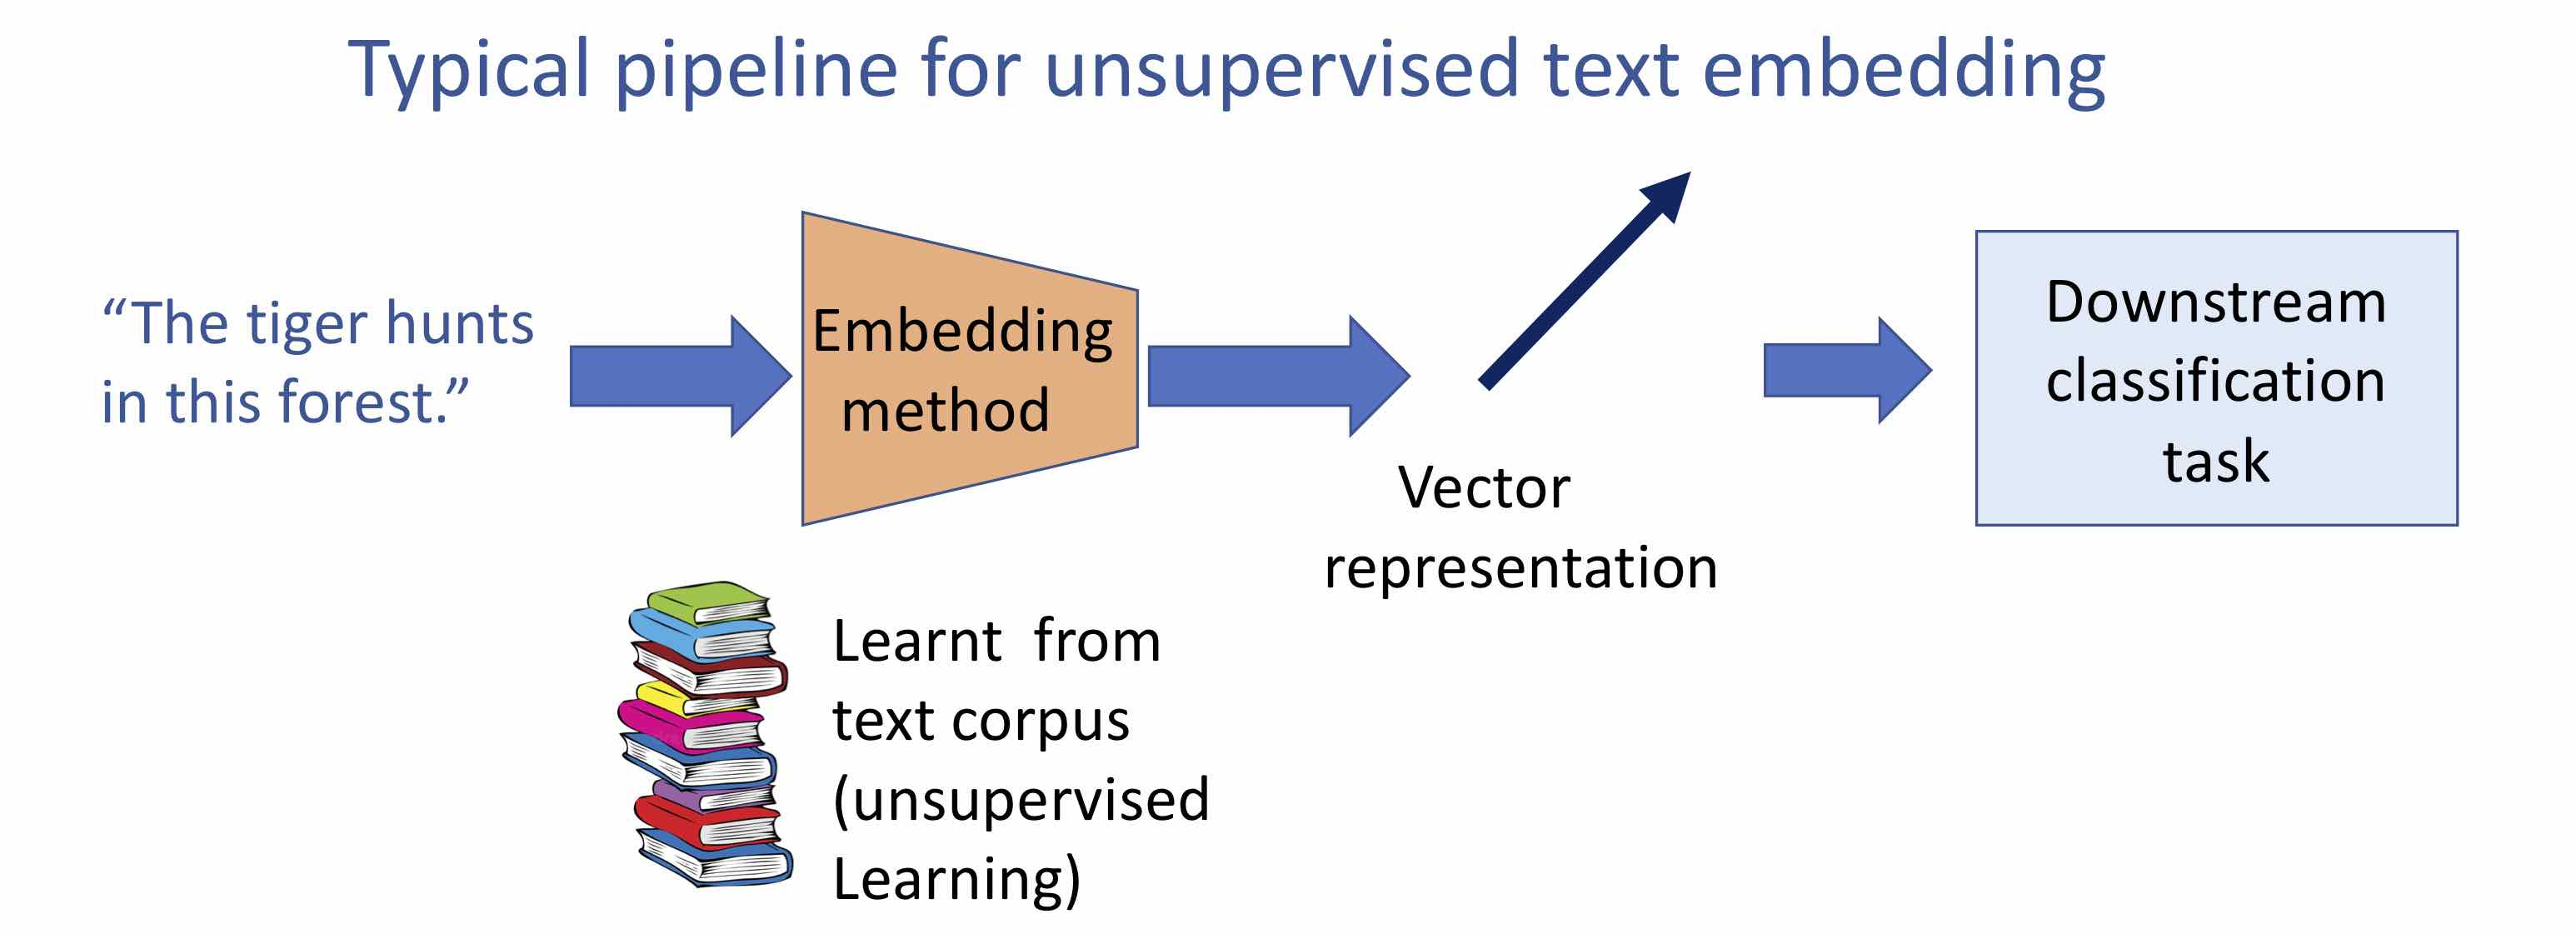 How are text embeddings used in downstream classification task.